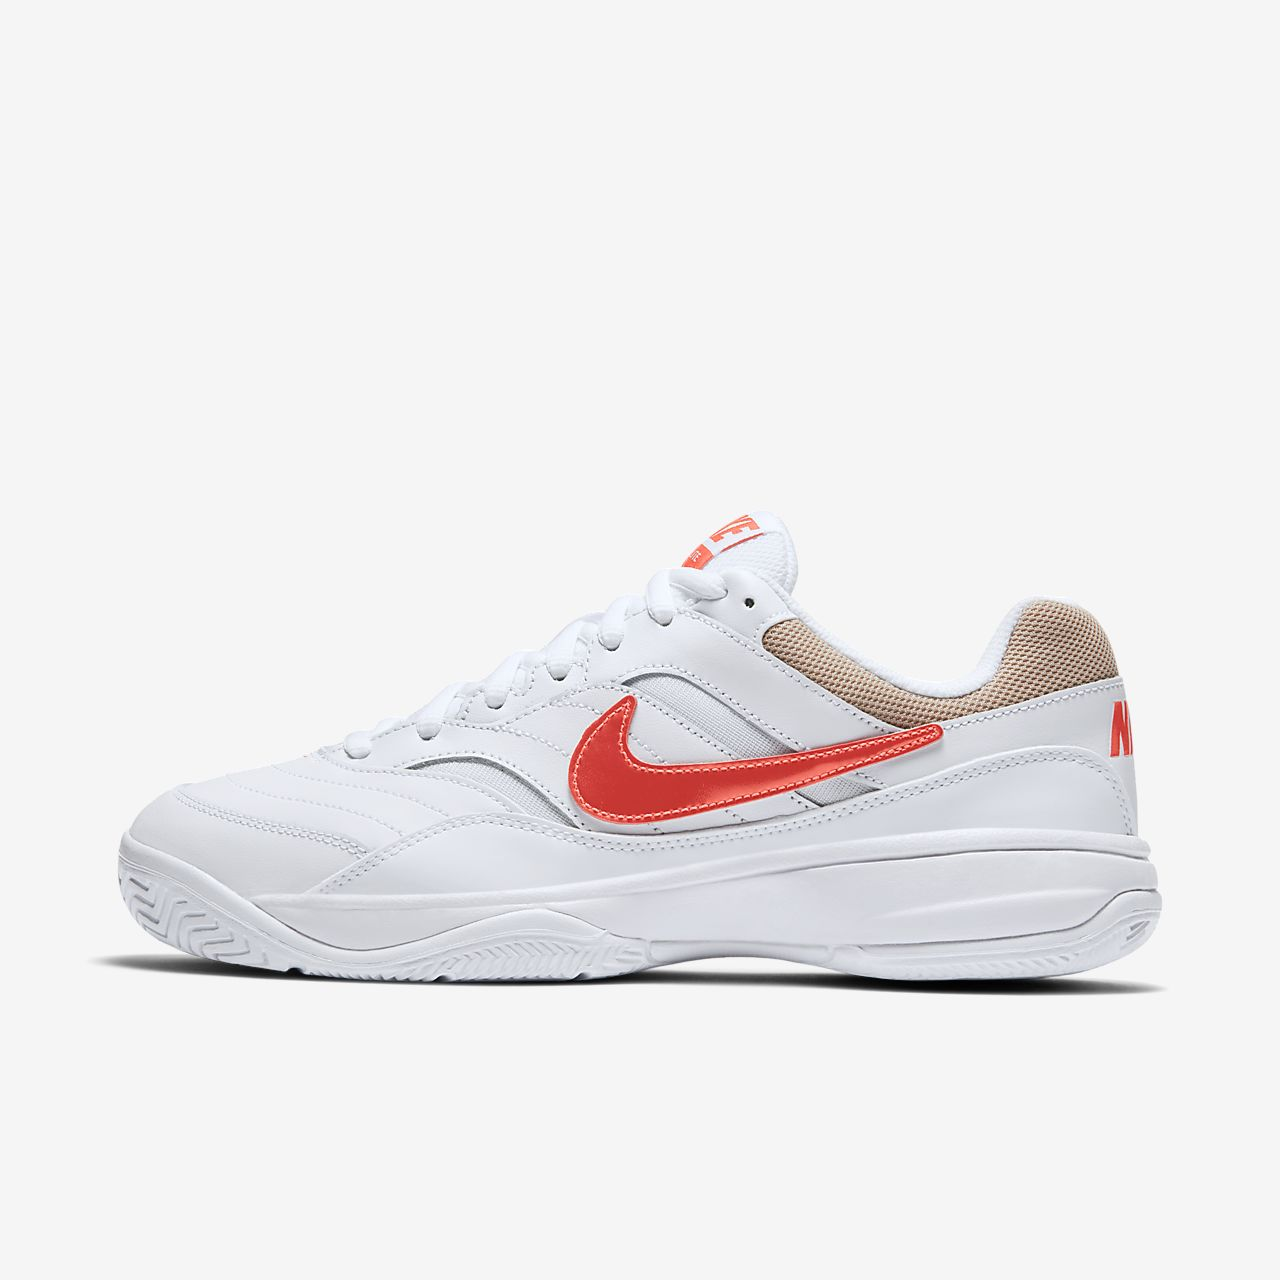 NikeCourt Lite Men's Hard Court Tennis Shoe